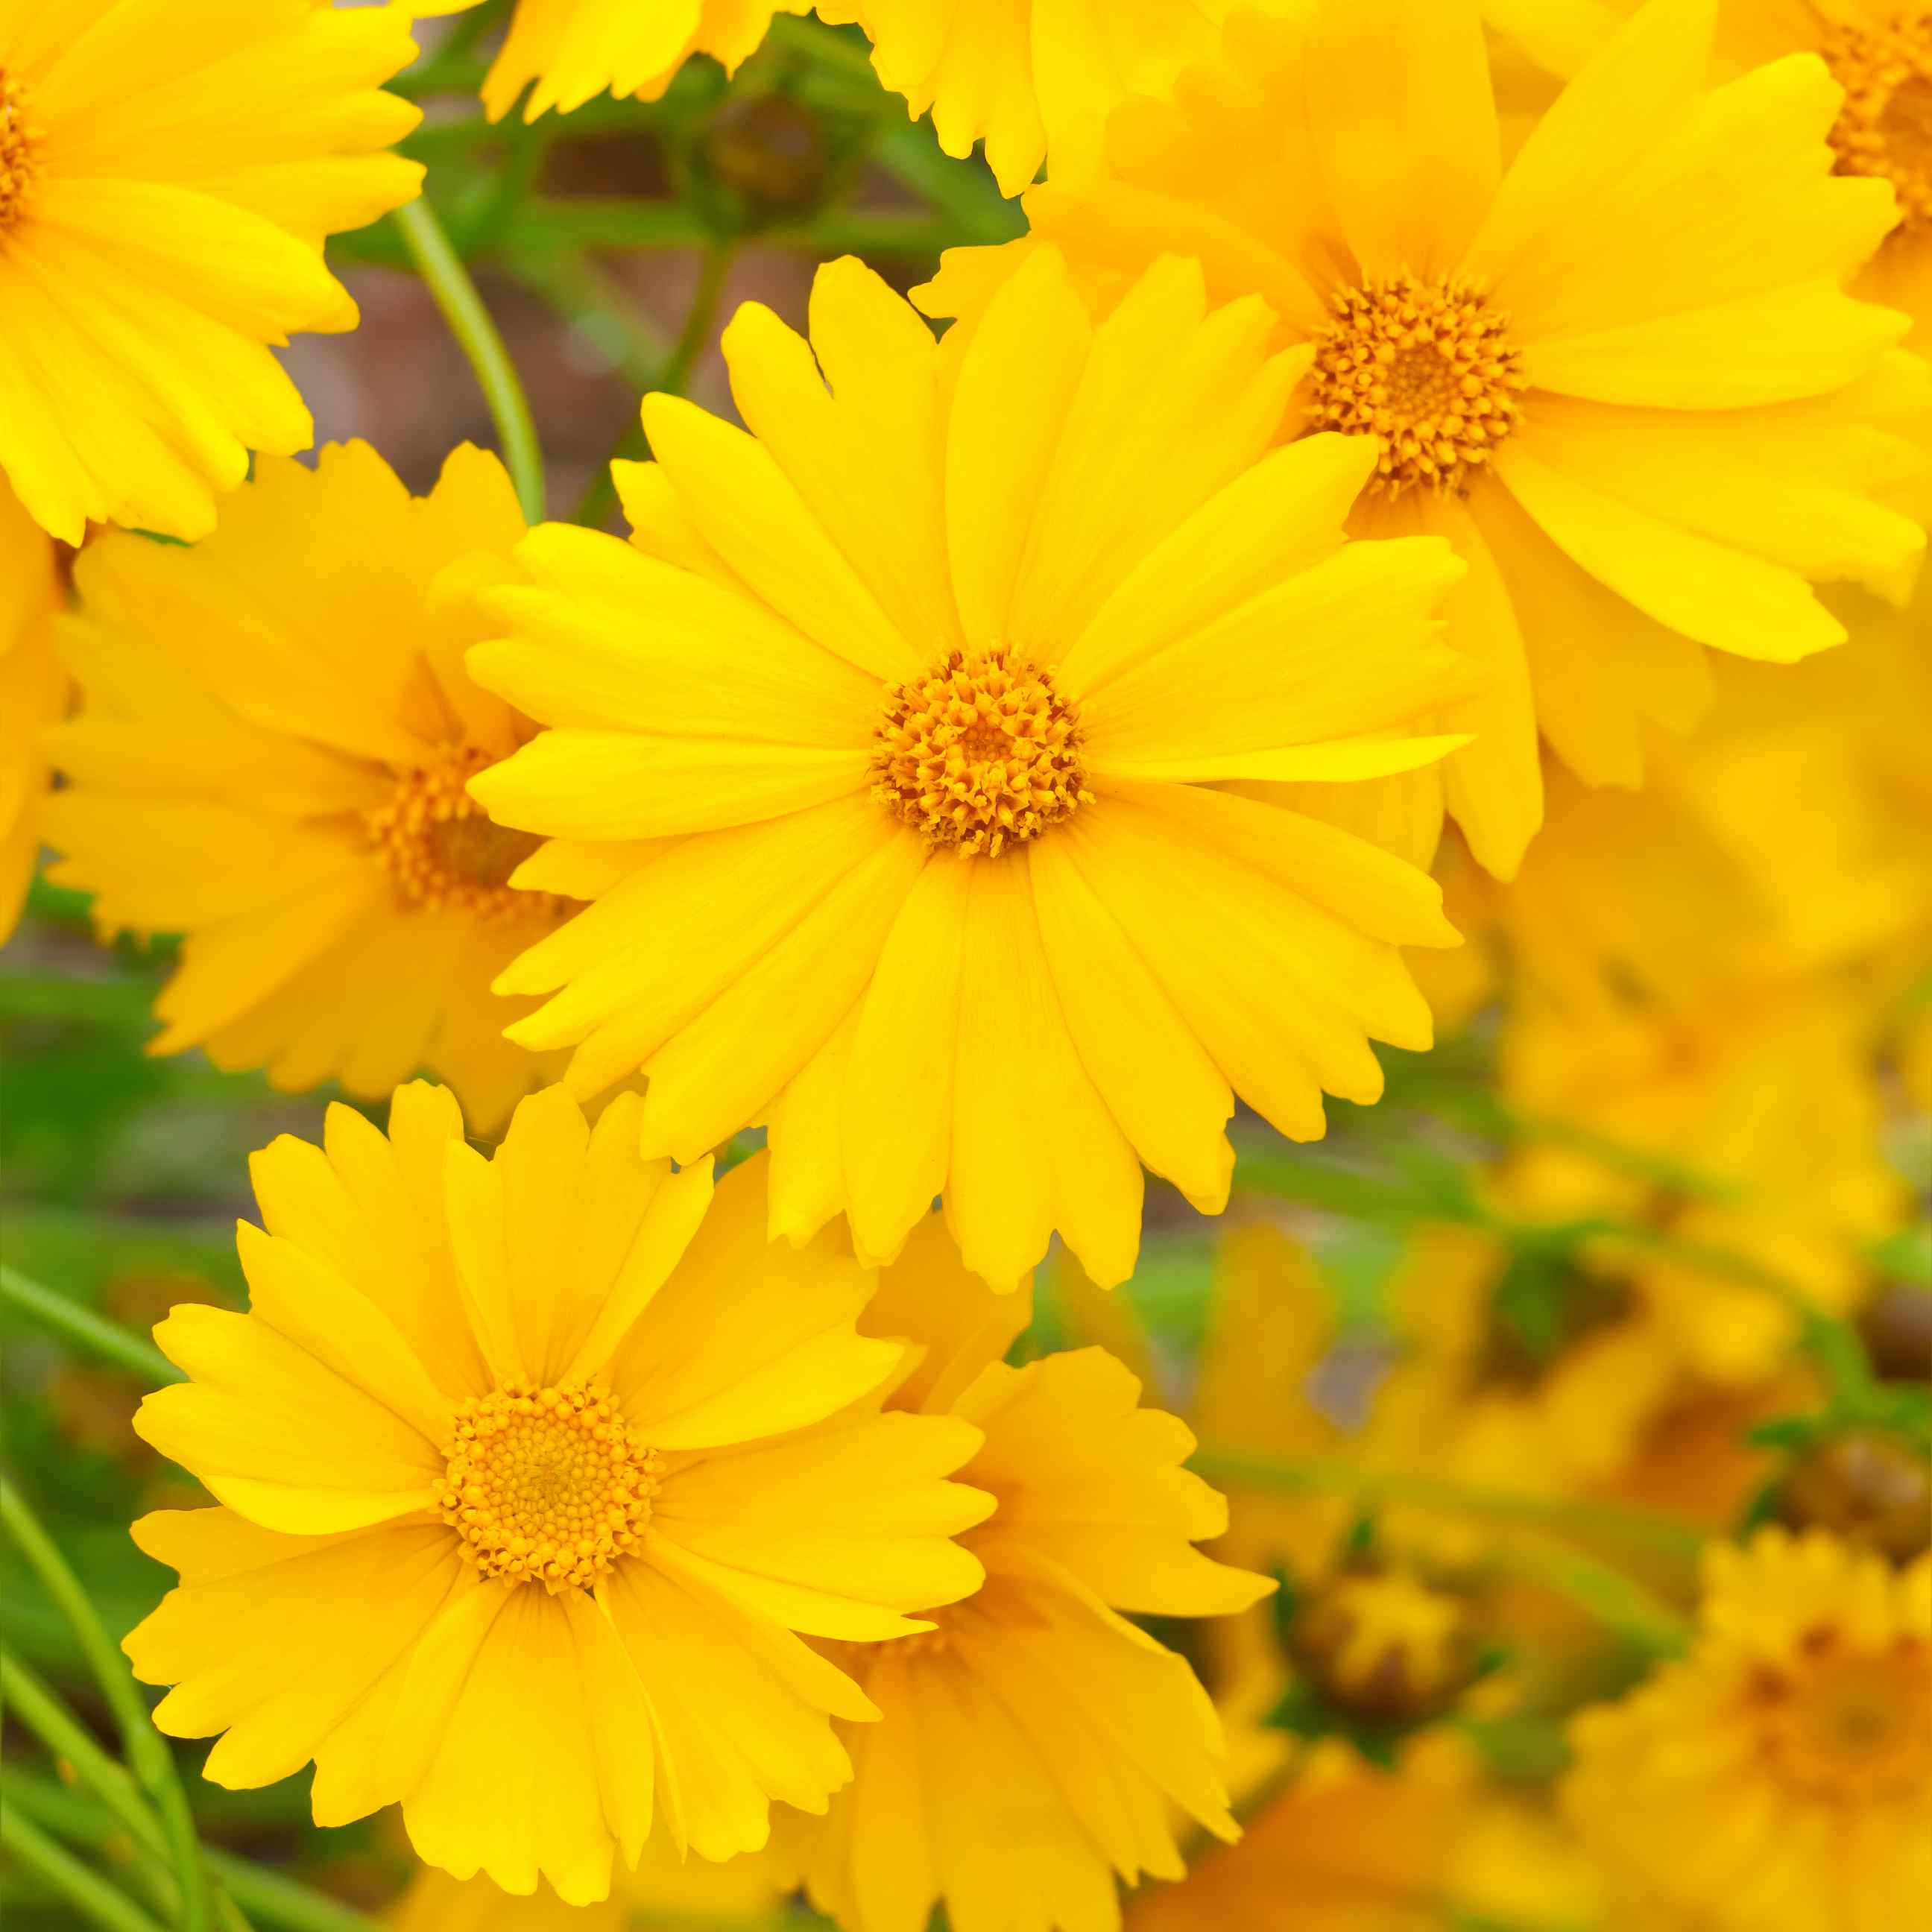 Lanceleaf Coreopsis with yellow petals and centers